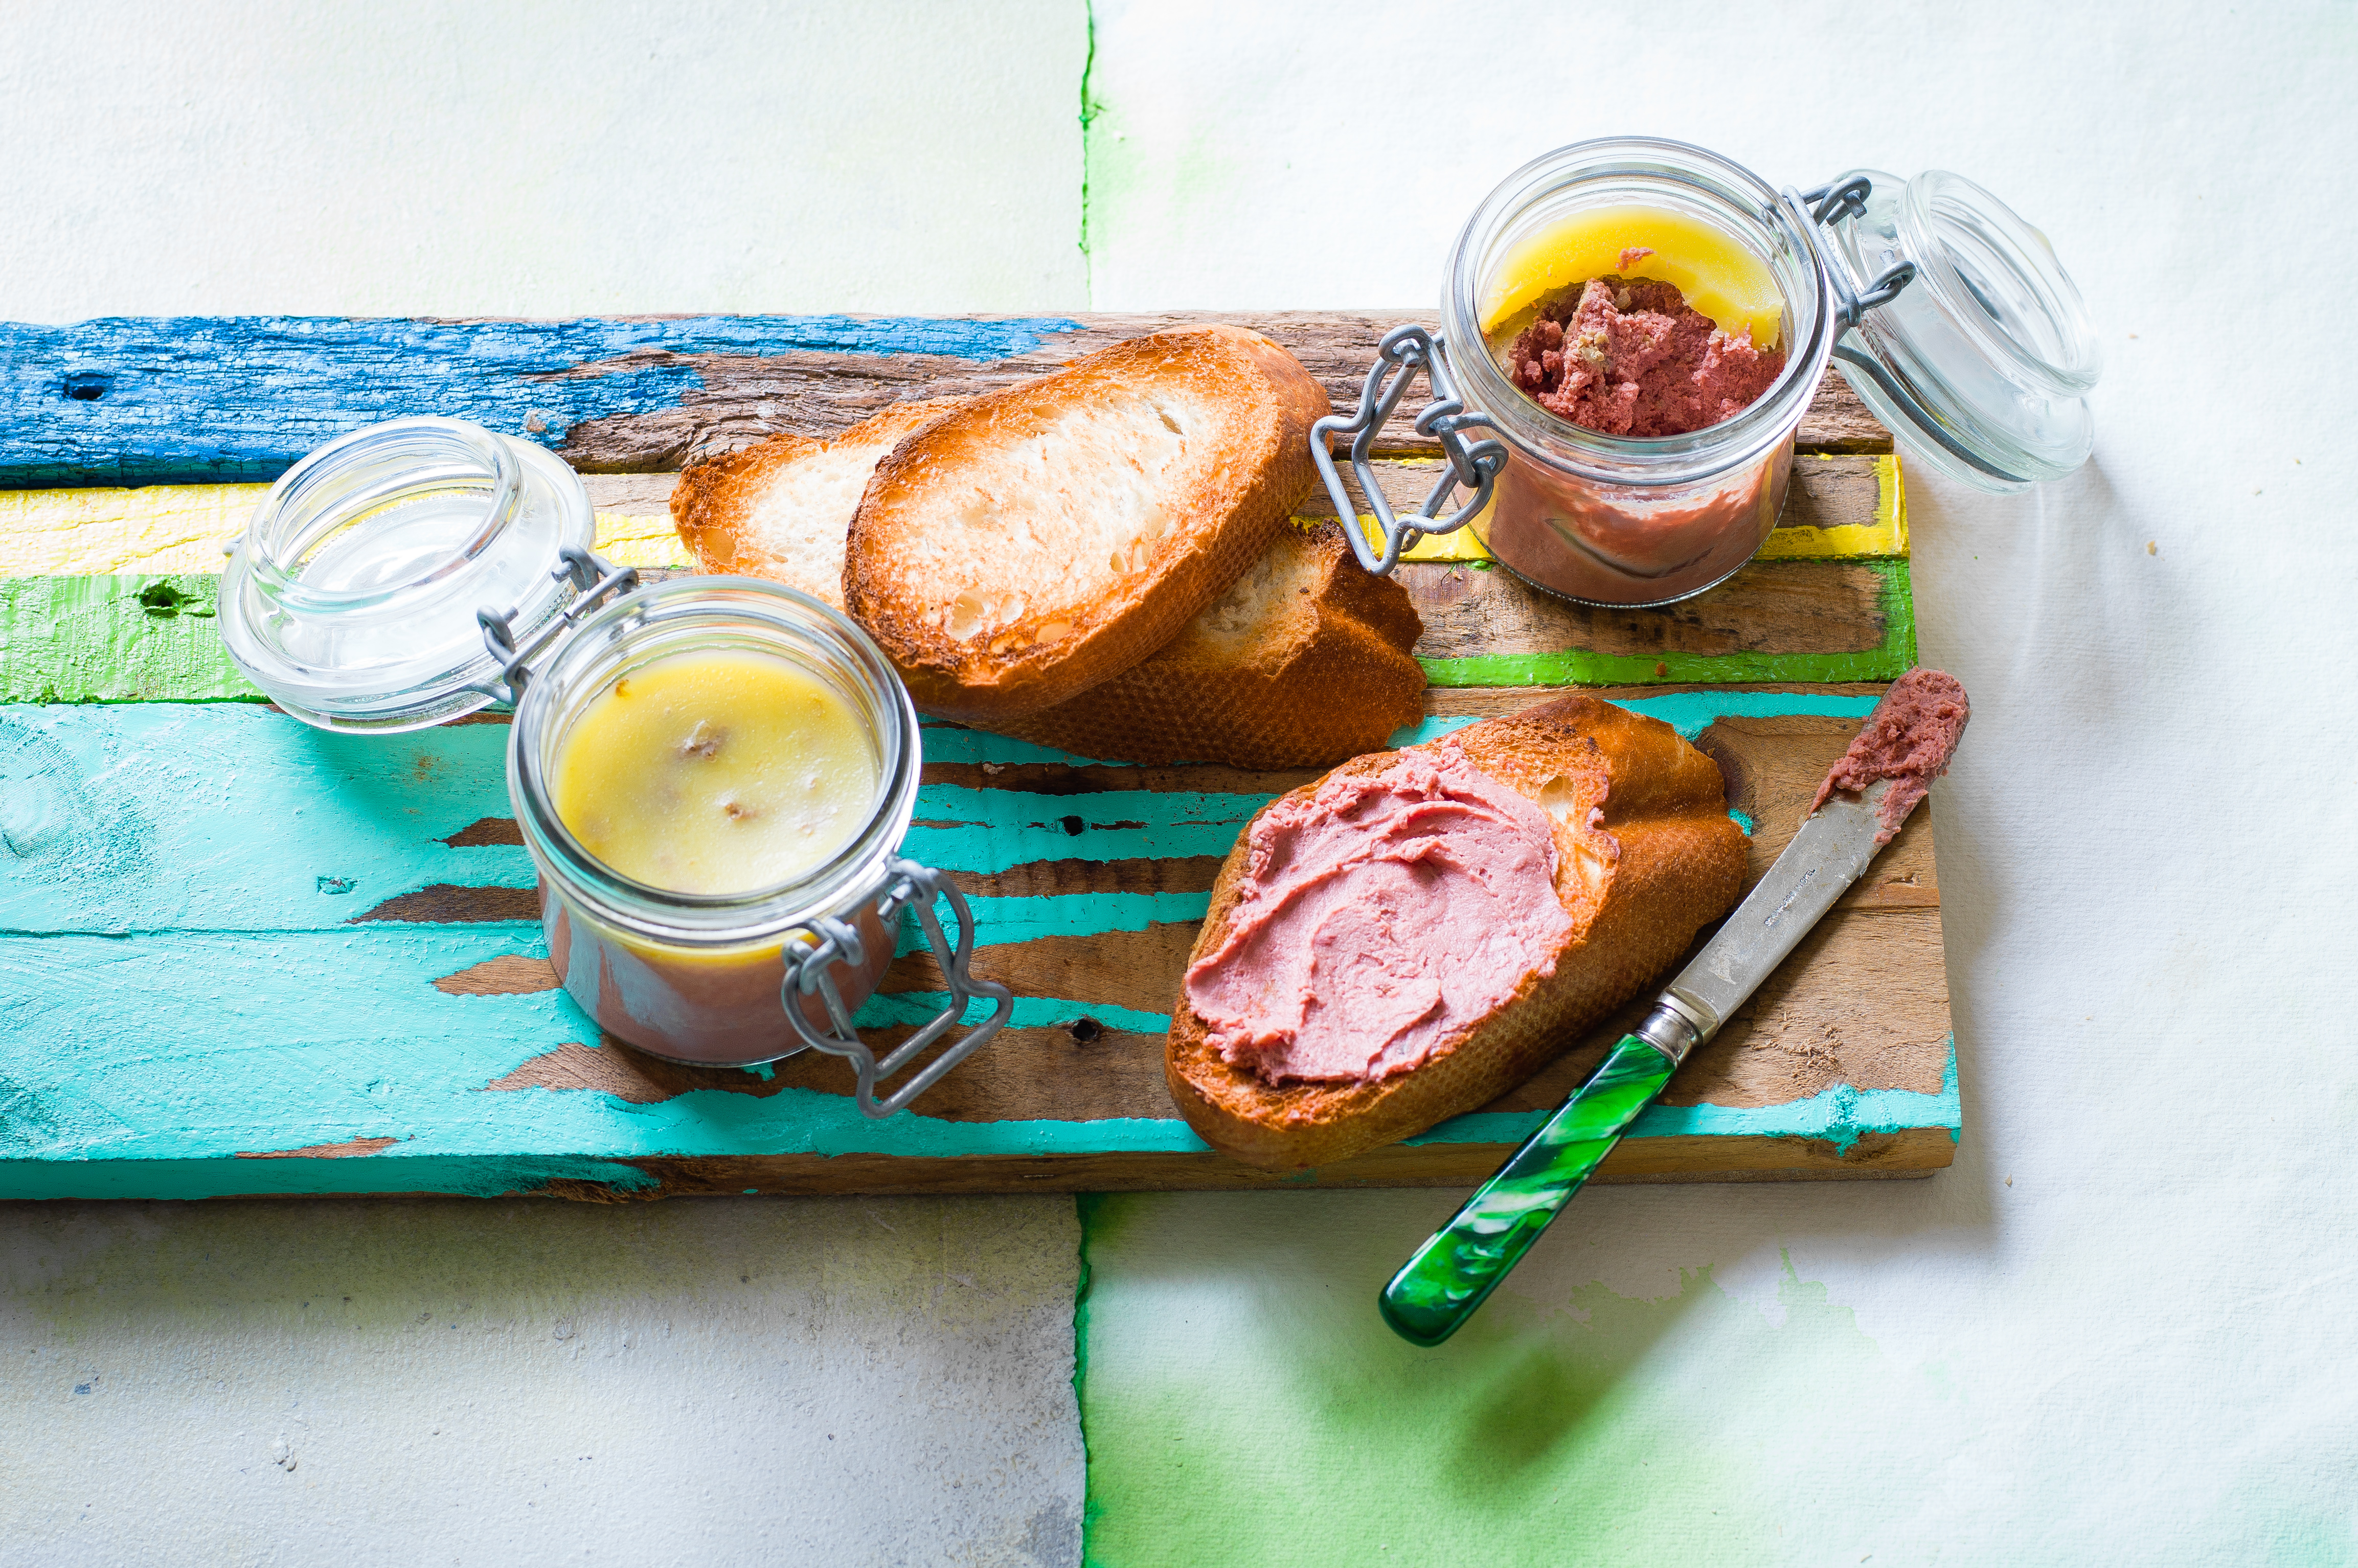 Best pate or terrine